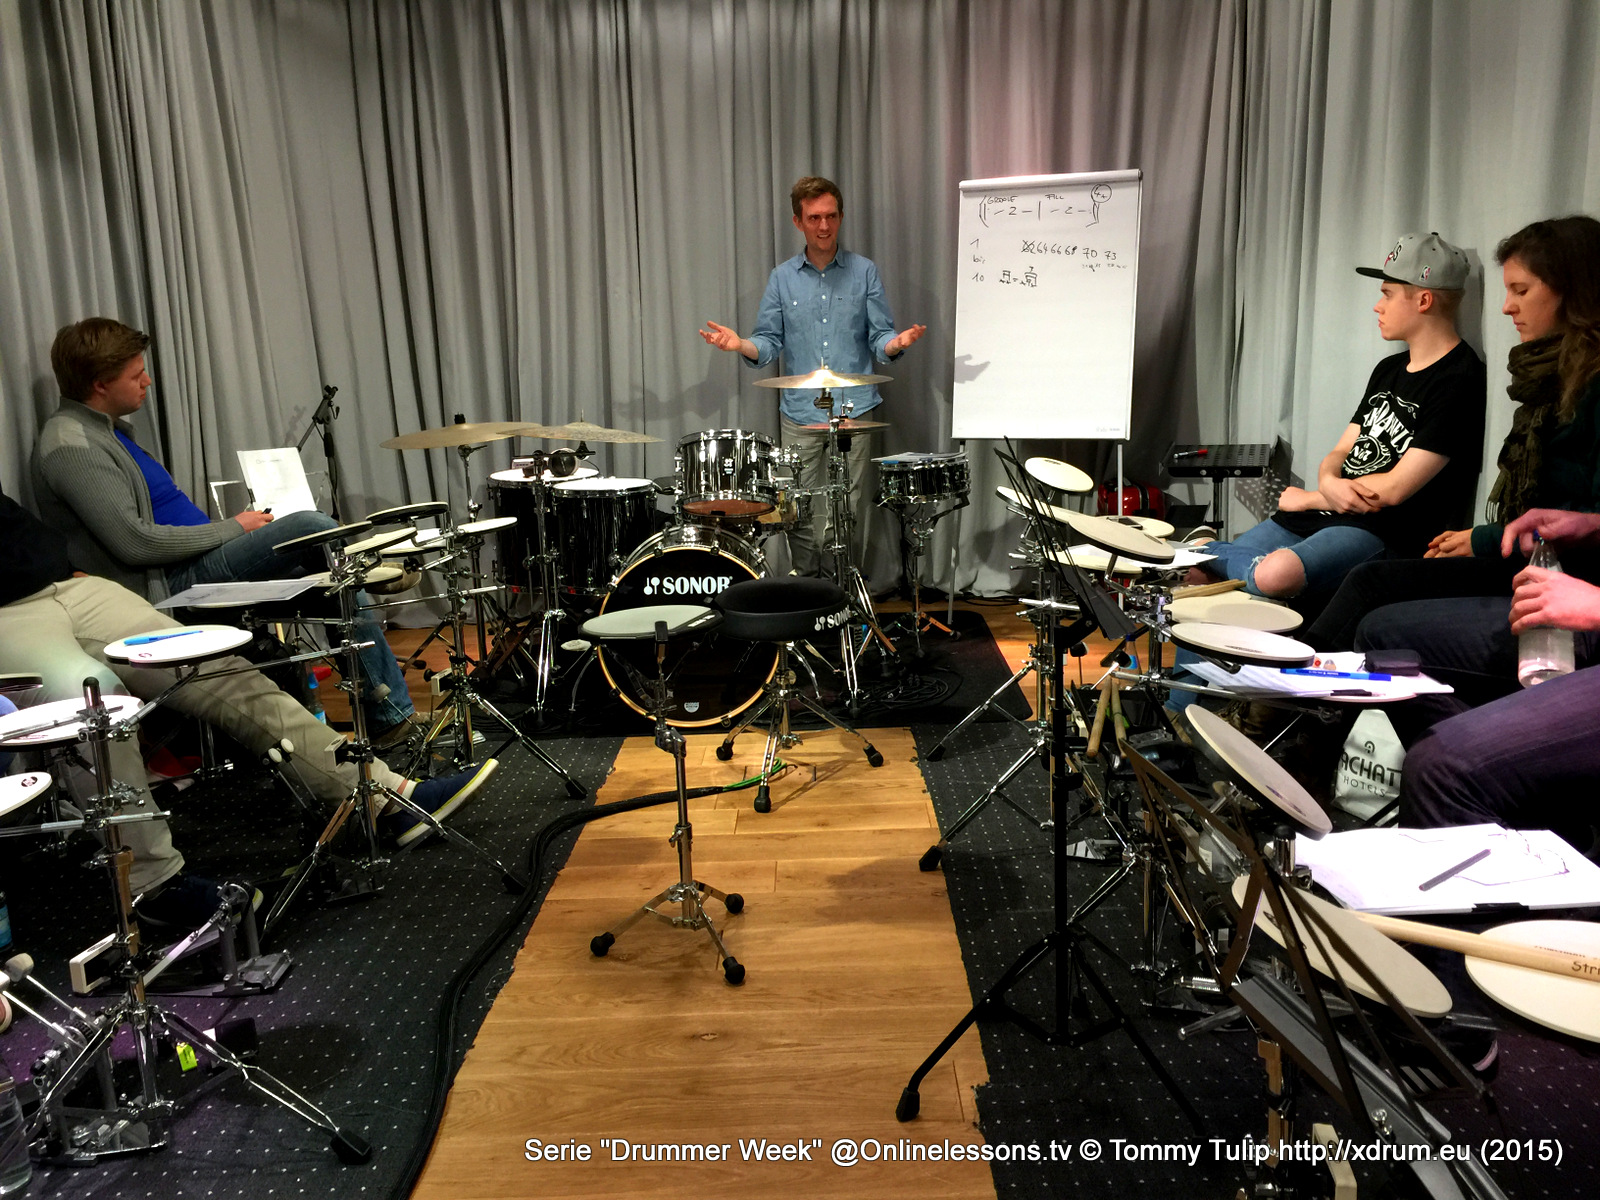 Jost Nickel - Drummer Week 10.15 Onlinelessons.tv